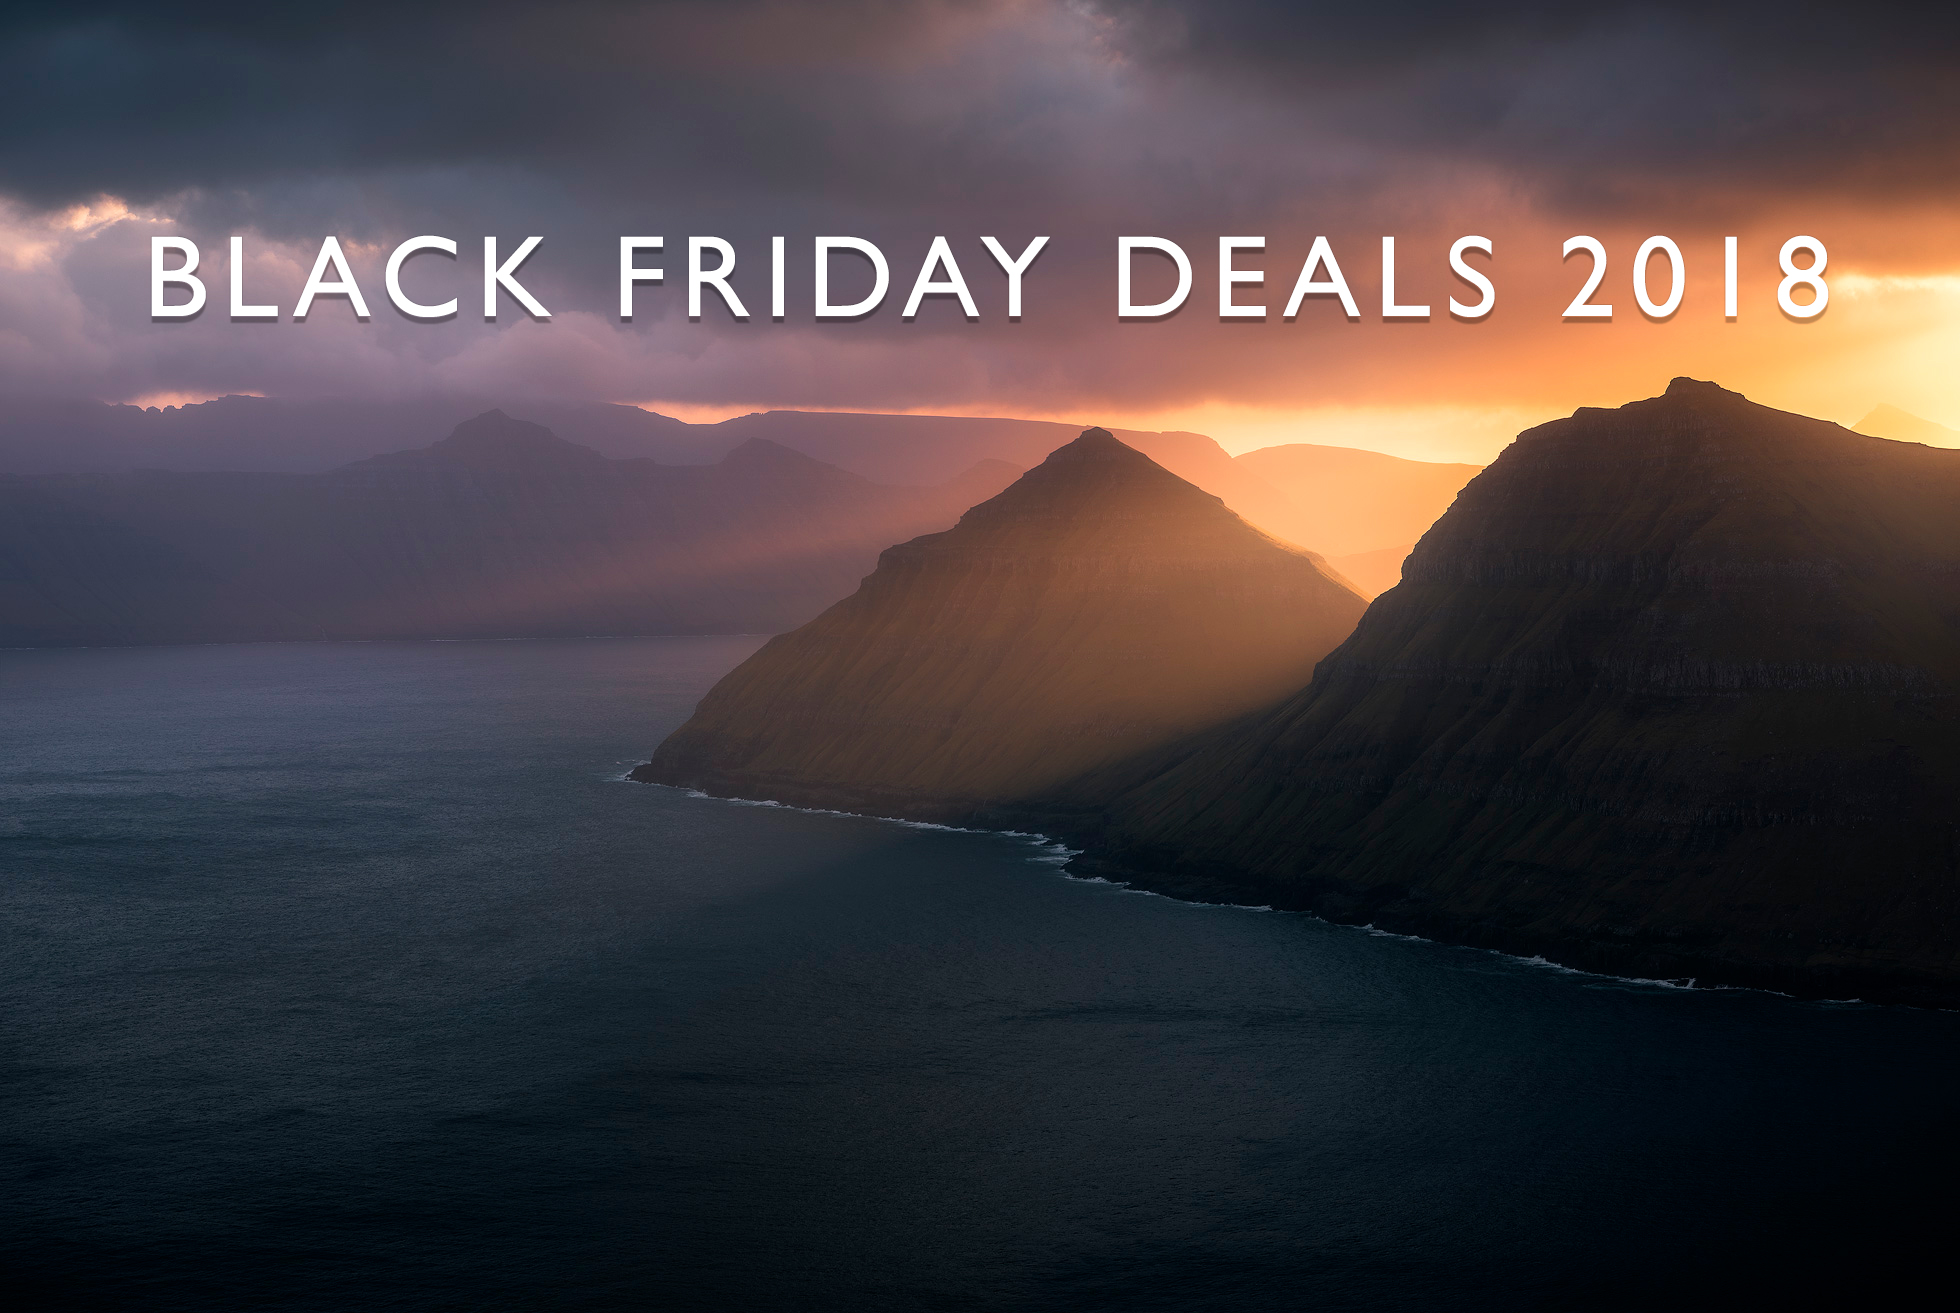 Best Black Friday Deals for Photography in 2018